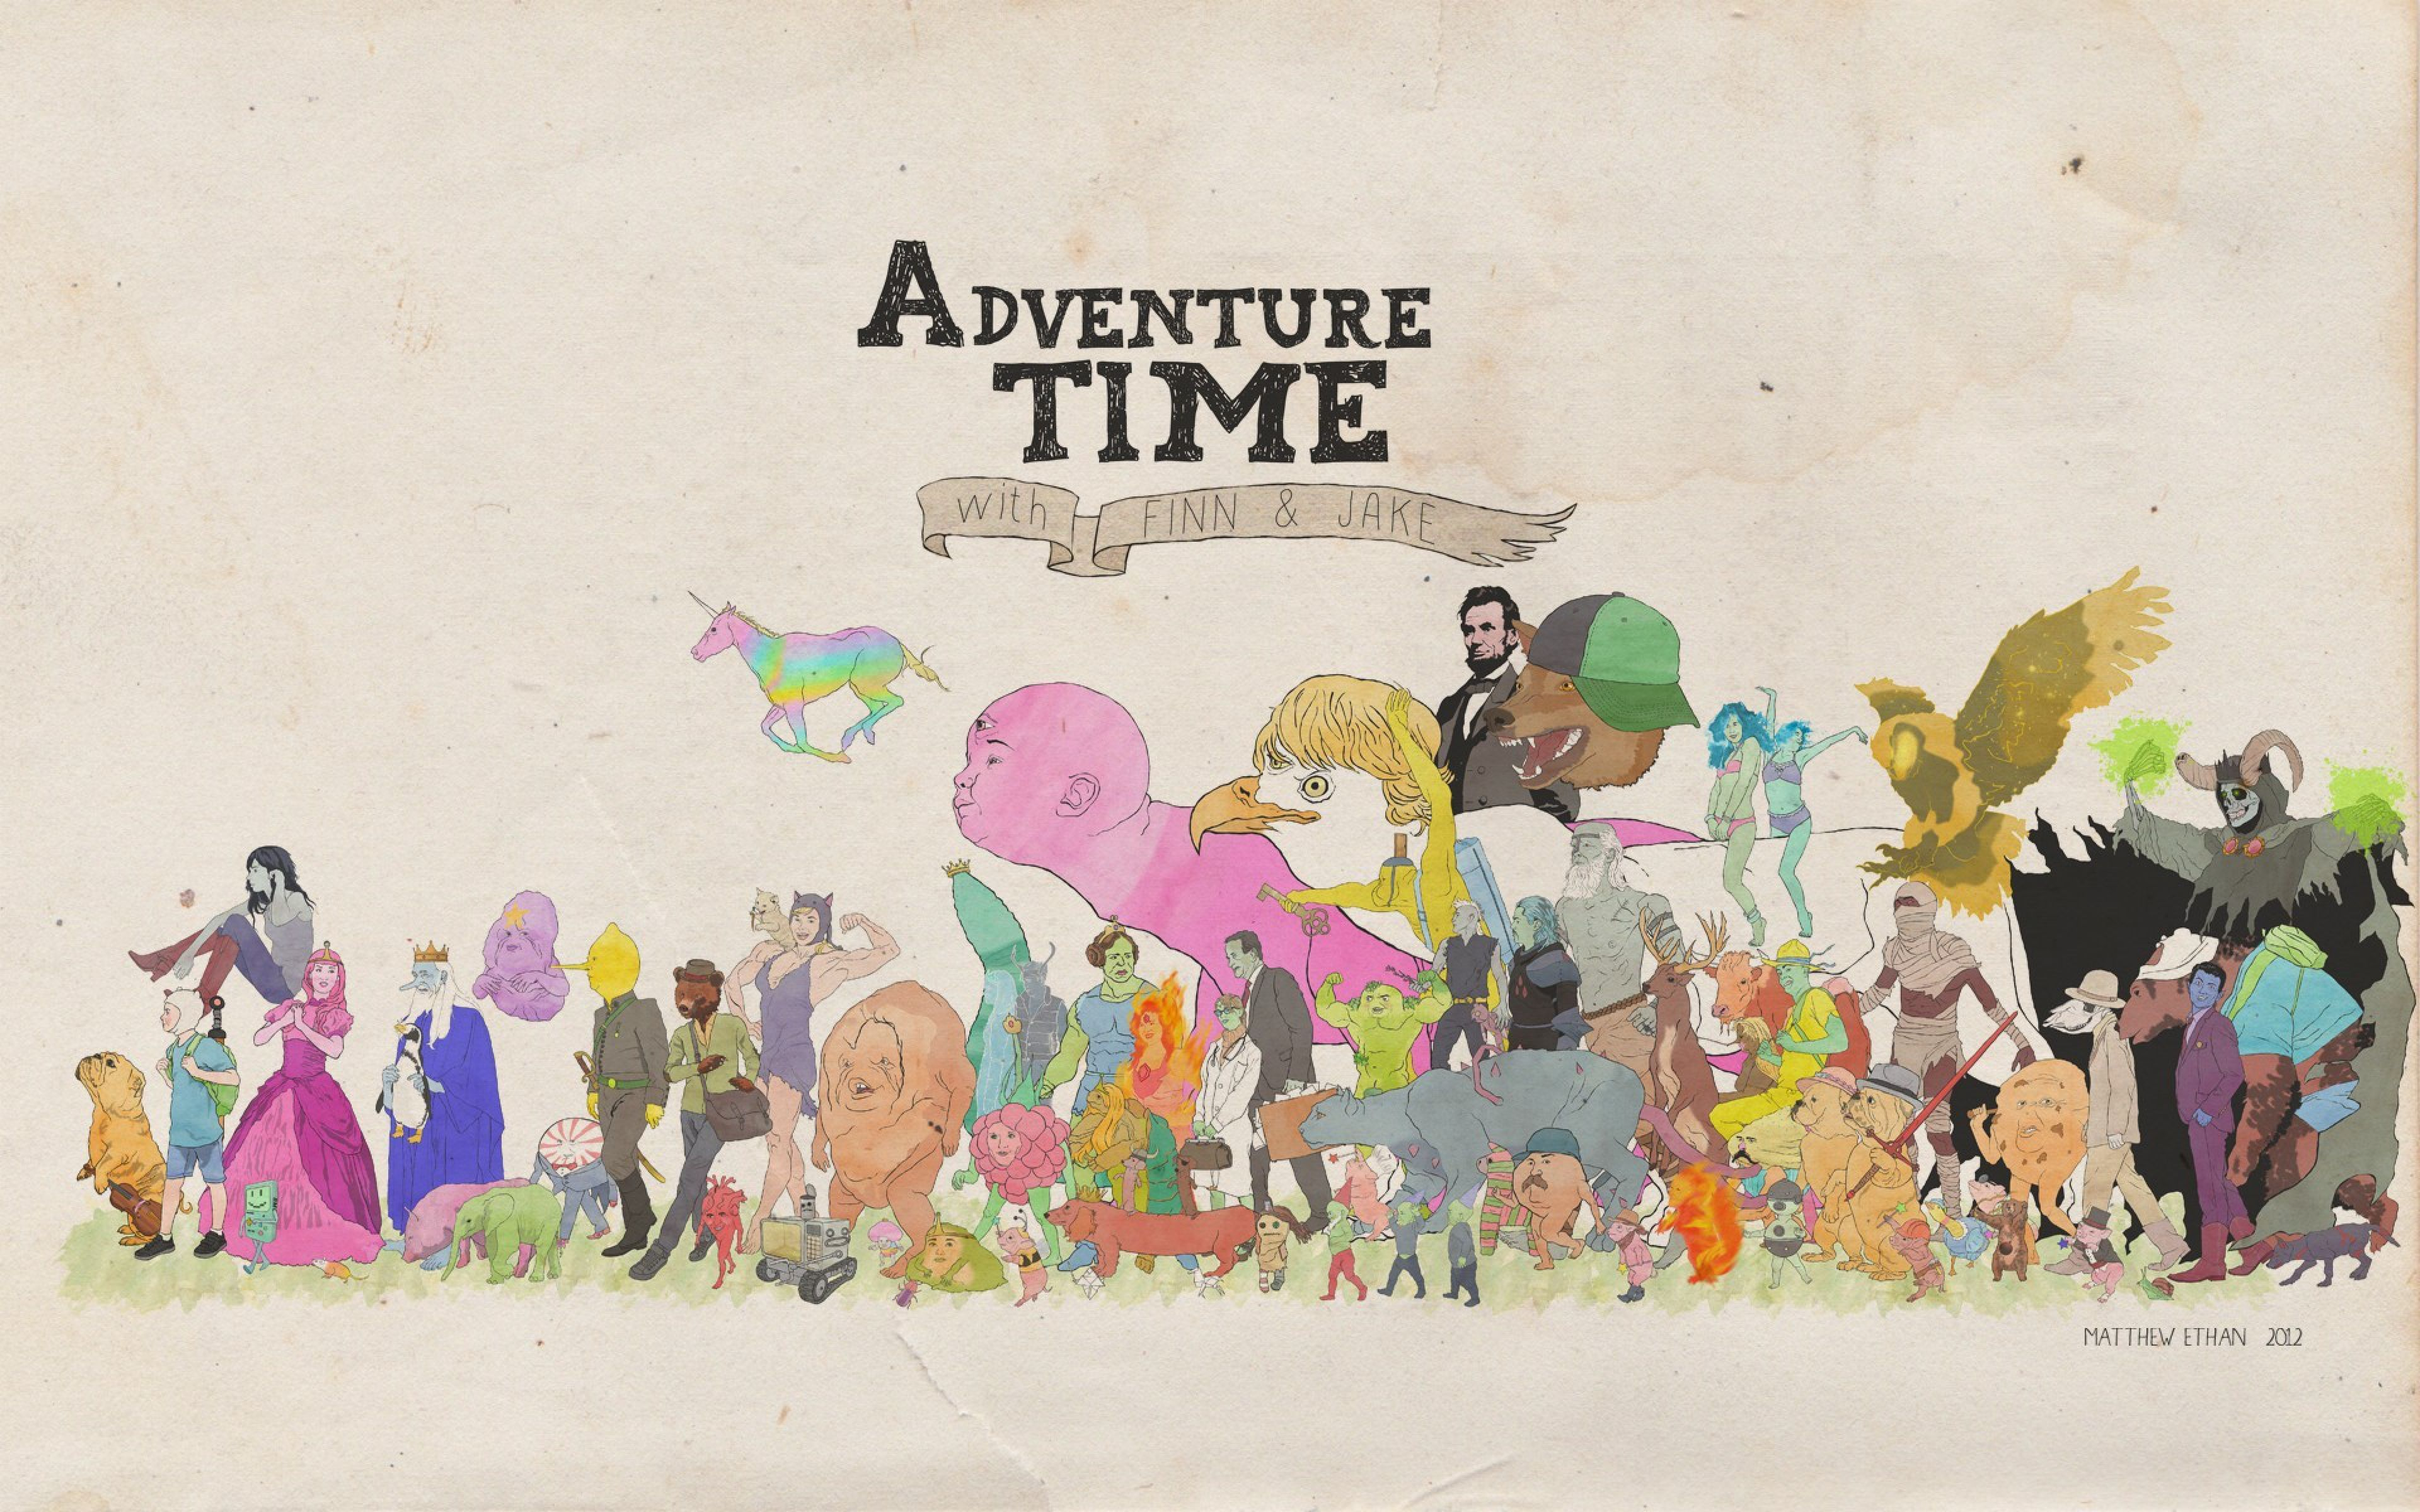 Adventure Time Computer Wallpapers   Top Adventure Time 3840x2400